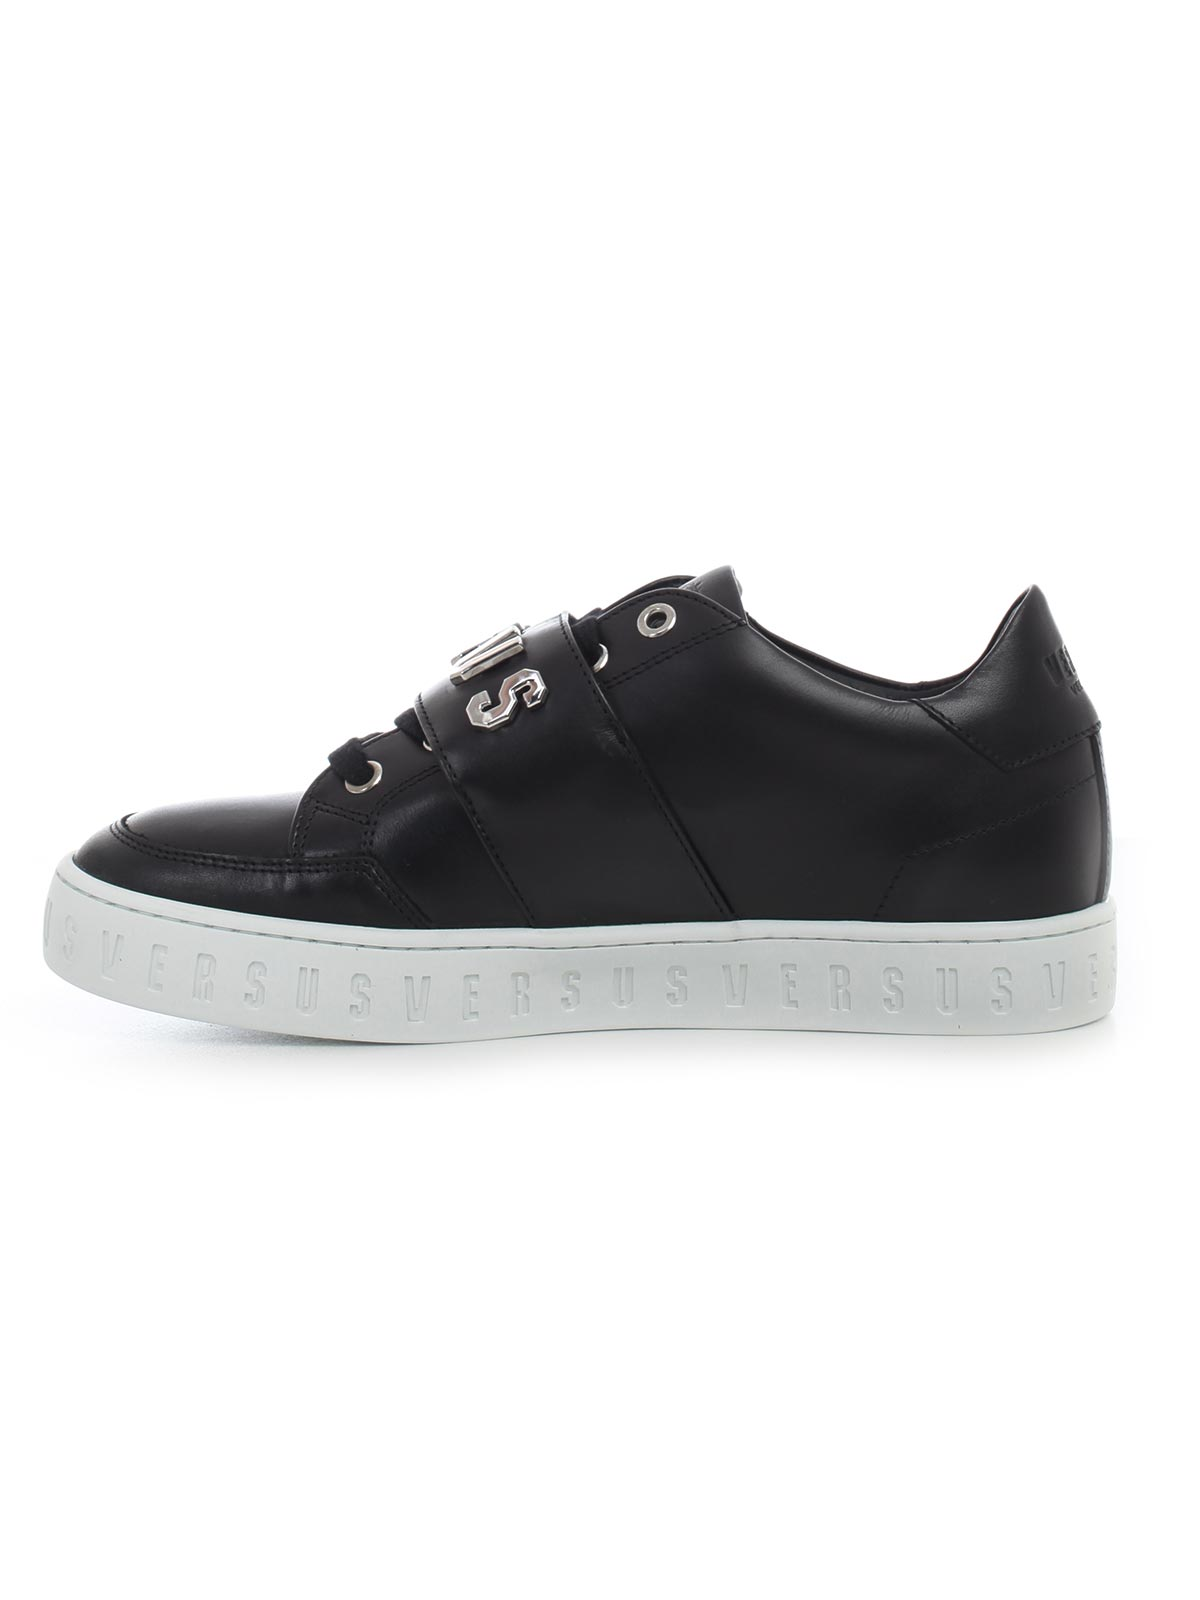 Picture of Versus Versace Shoes